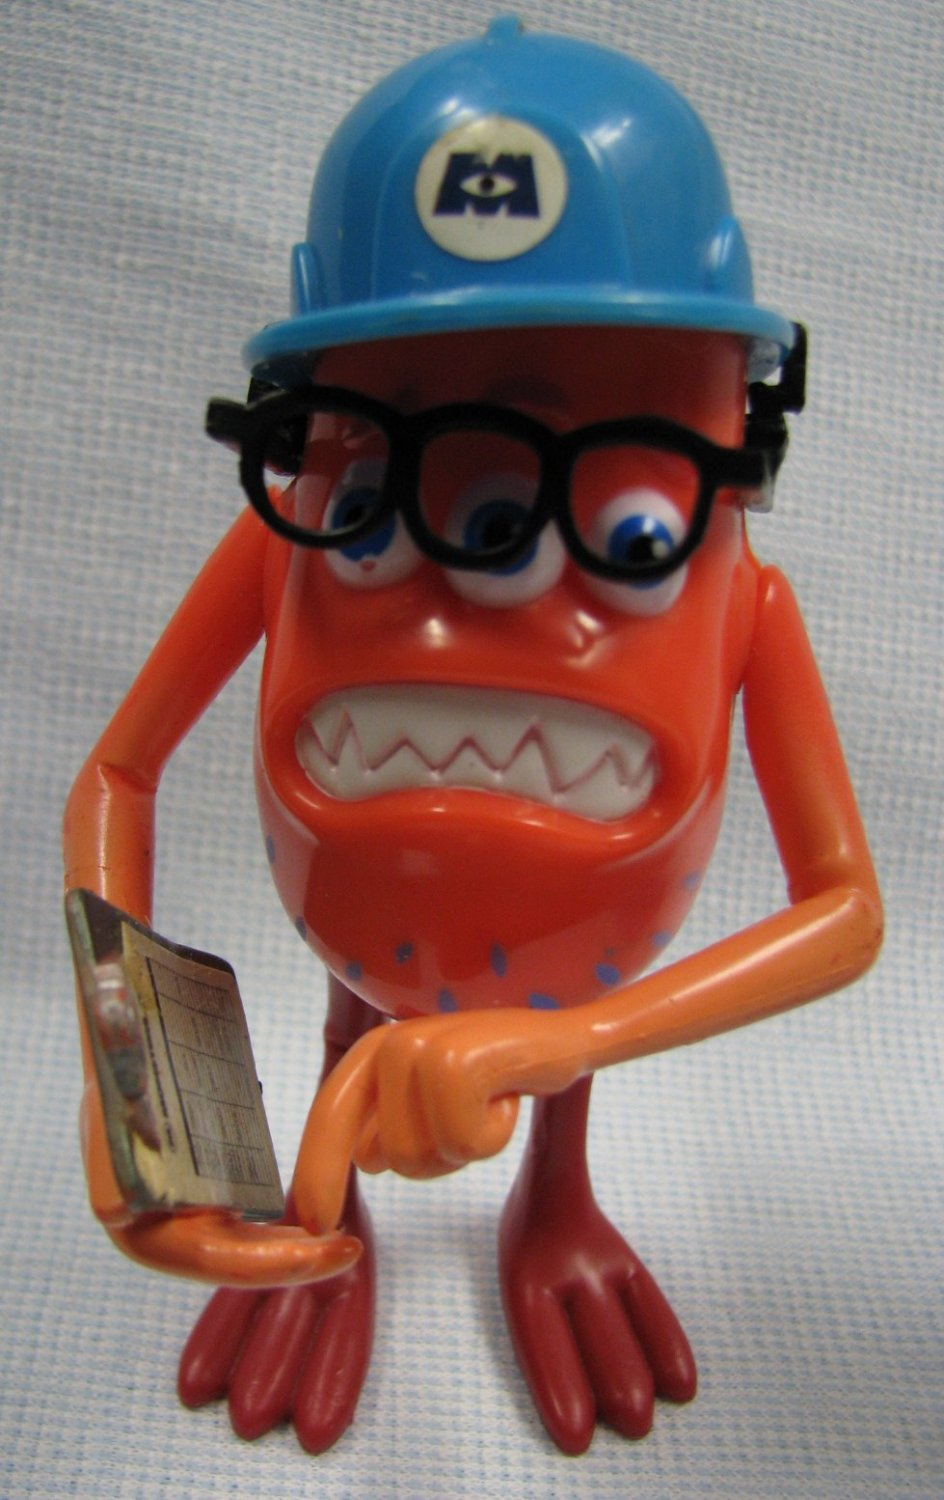 Us Auto Sales Payment >> Monsters Inc Fungus Action Figure Hasbro